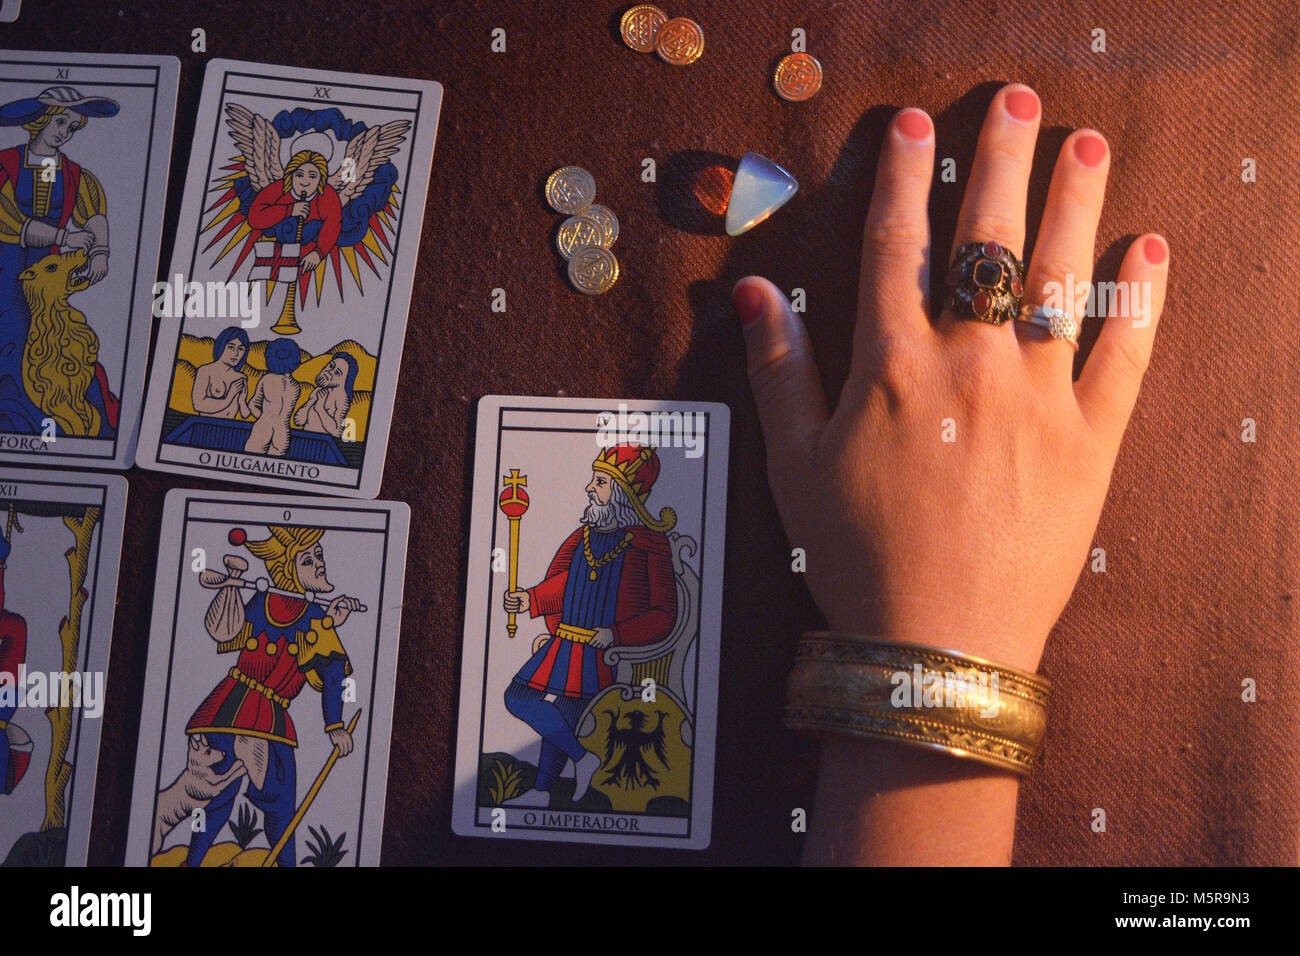 Tarot table and hand with crystals and gold - Stock Image